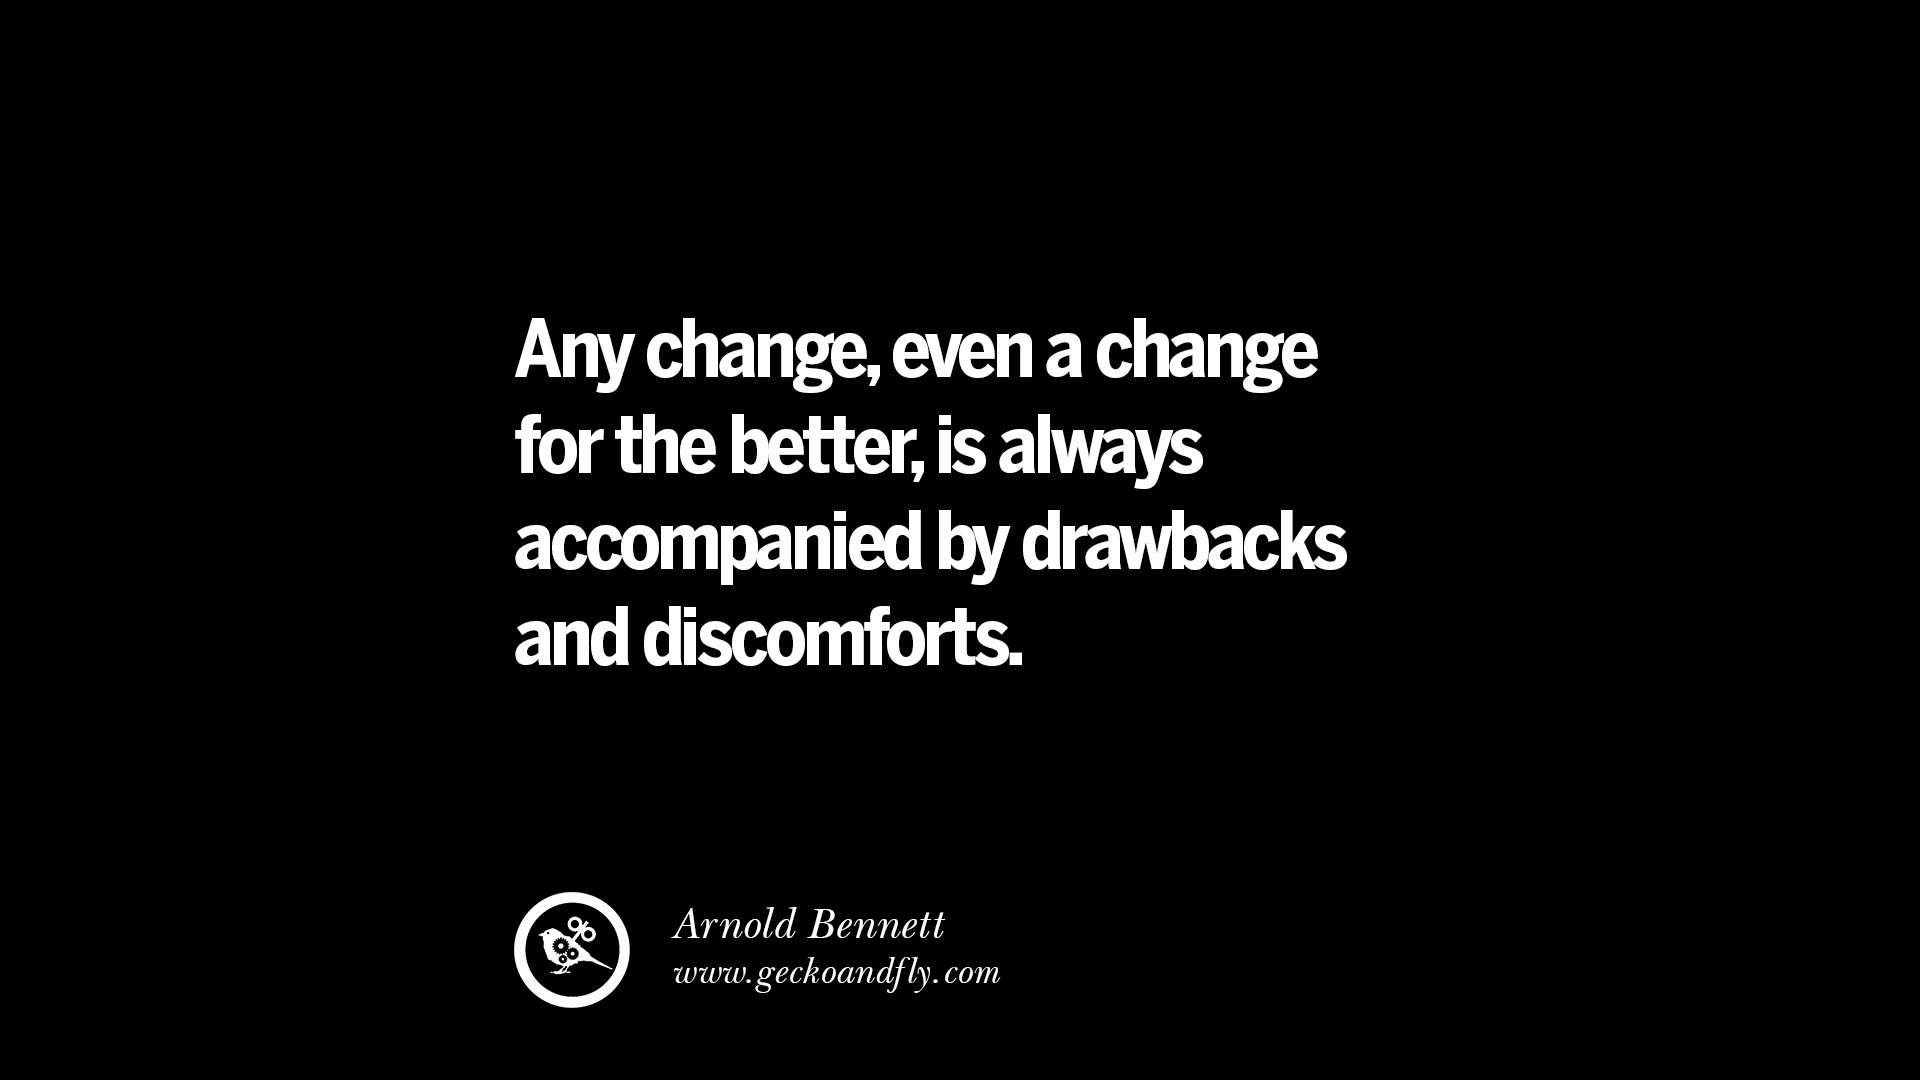 45 Quotes On Change And Changing Our Attitudes